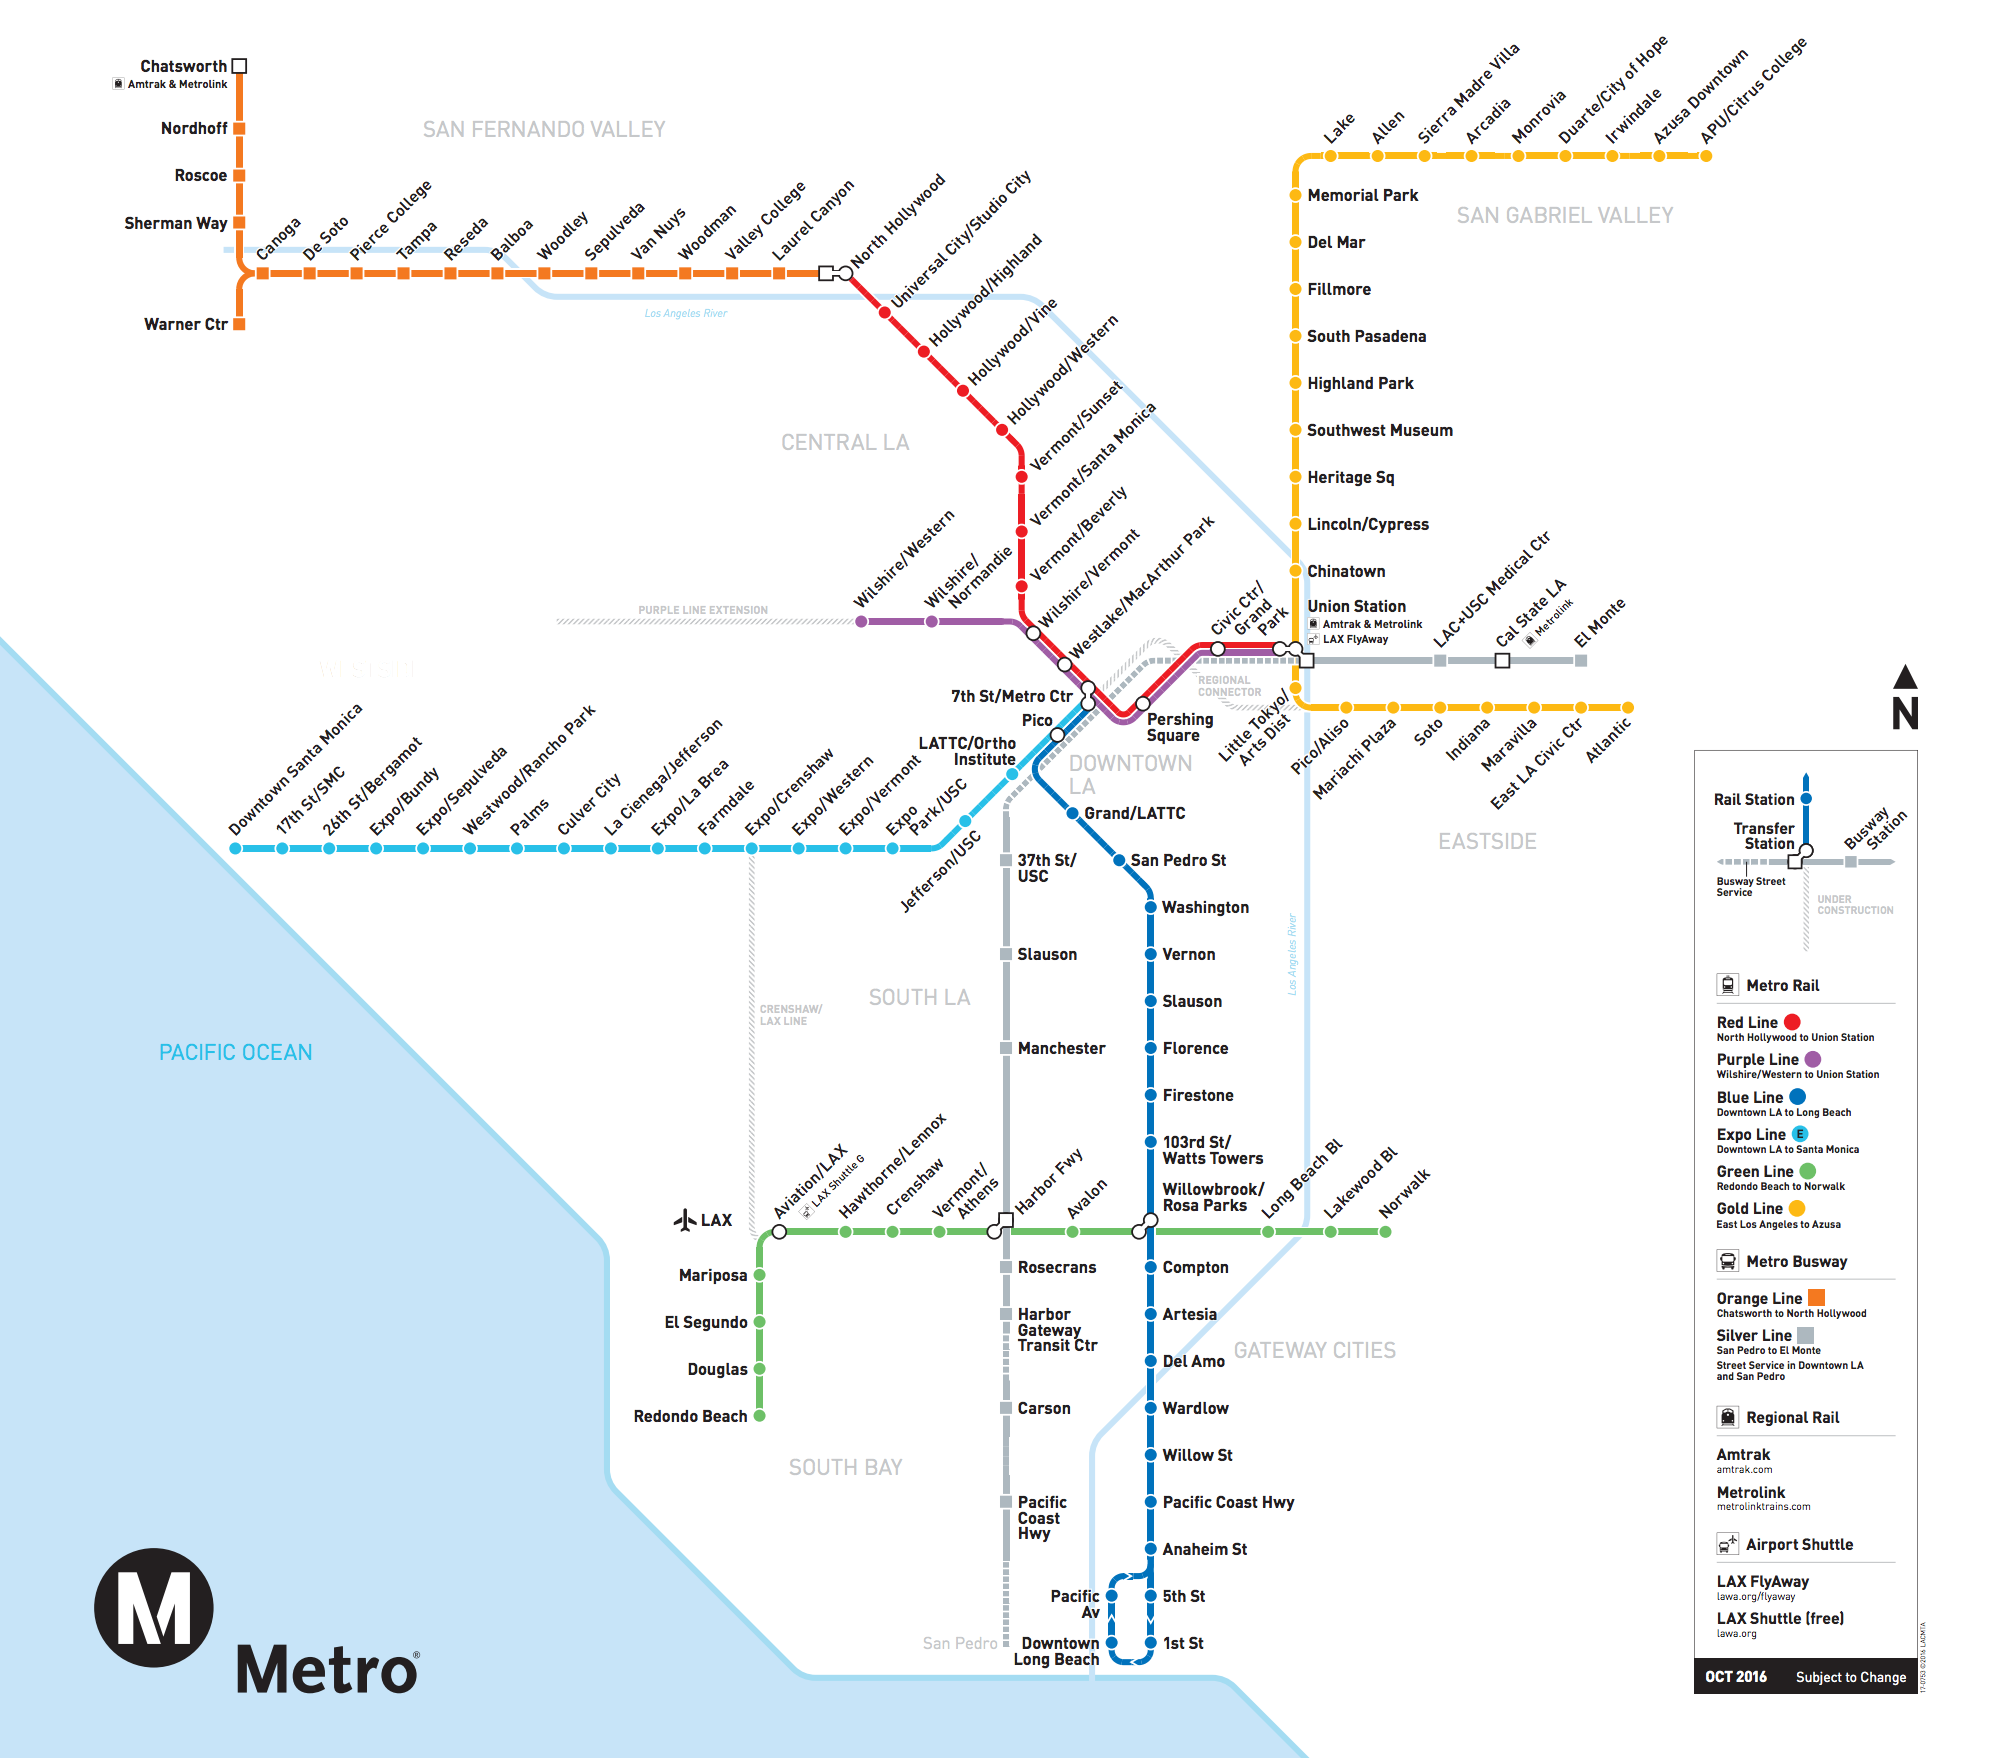 Subway Map Of Park Slope.The 2024 Olympics Might Make L A S Futuristic Metro Map Come True